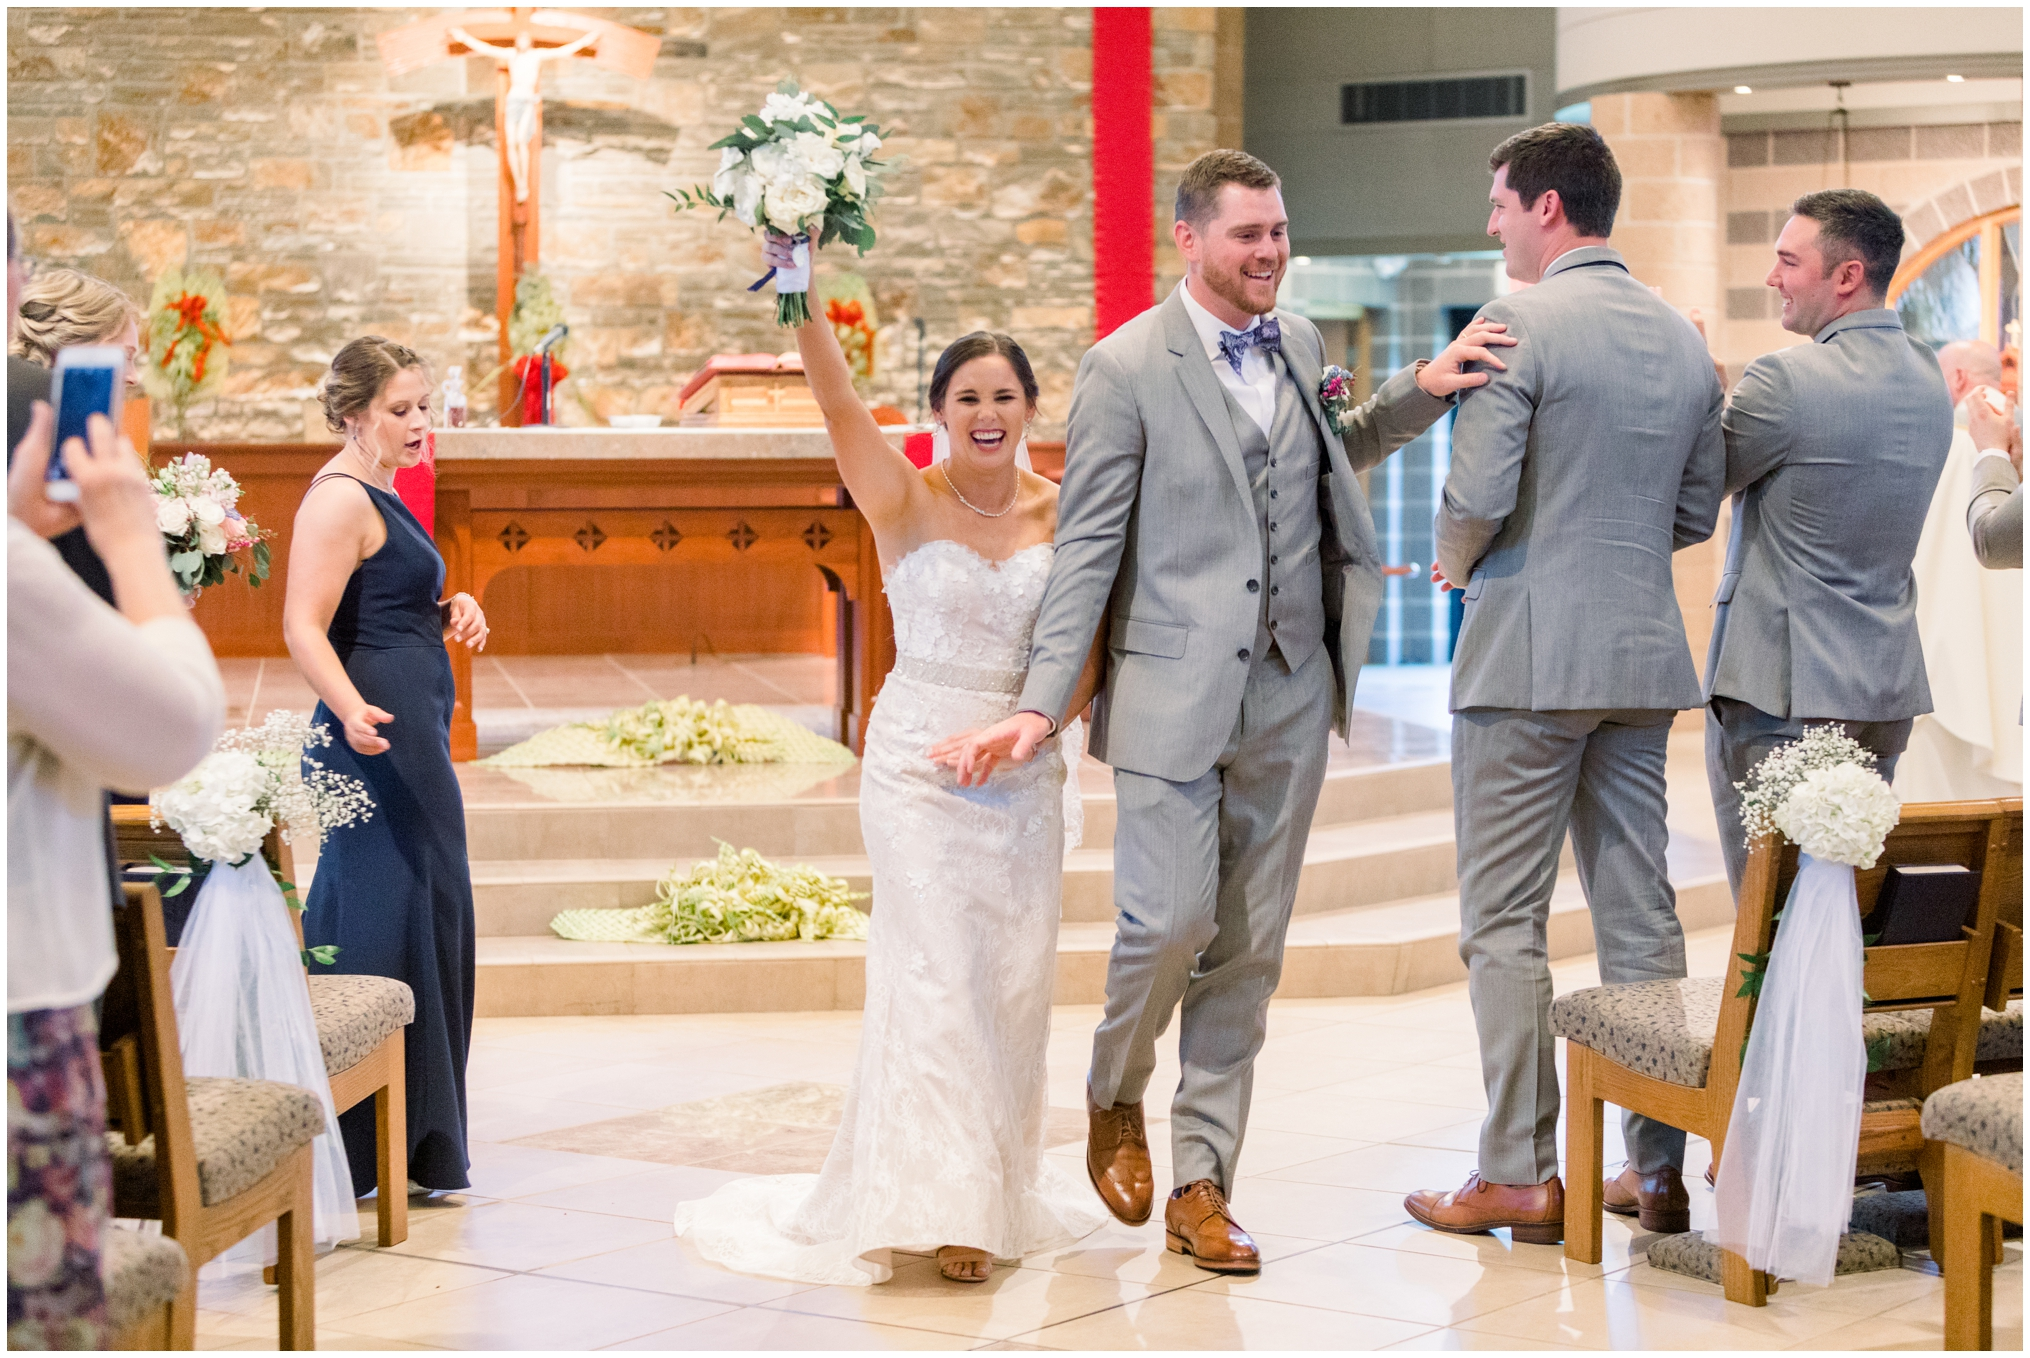 Krista Brackin Photography | April Wedding at The Carriage House at Rockwood Park_0050.jpg